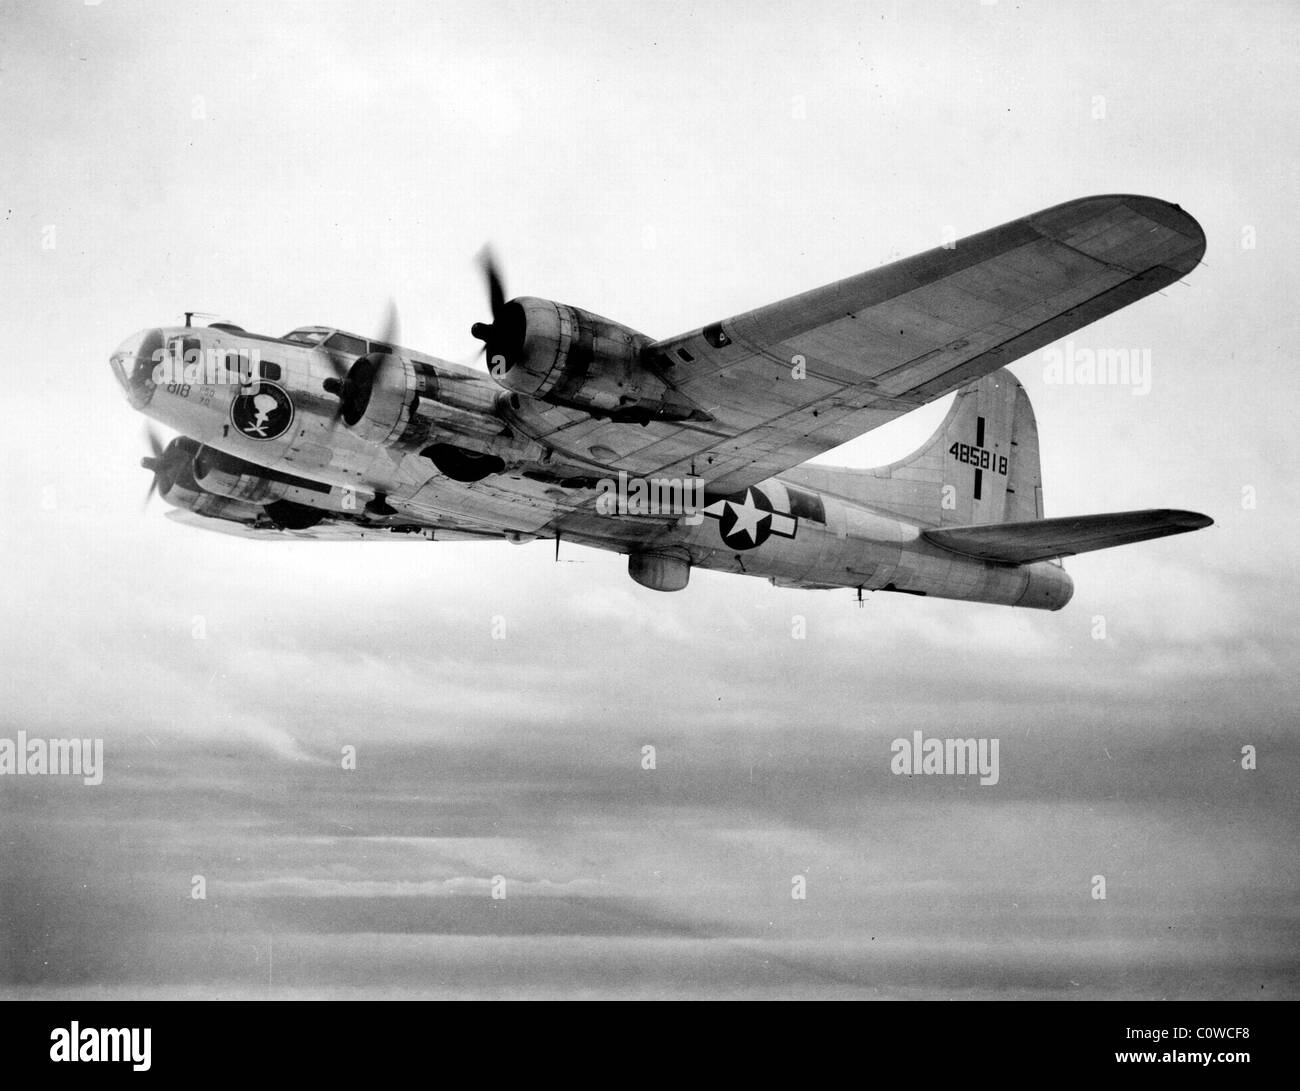 Boeing B-17 Flying Fortress bomber aircraft - Stock Image